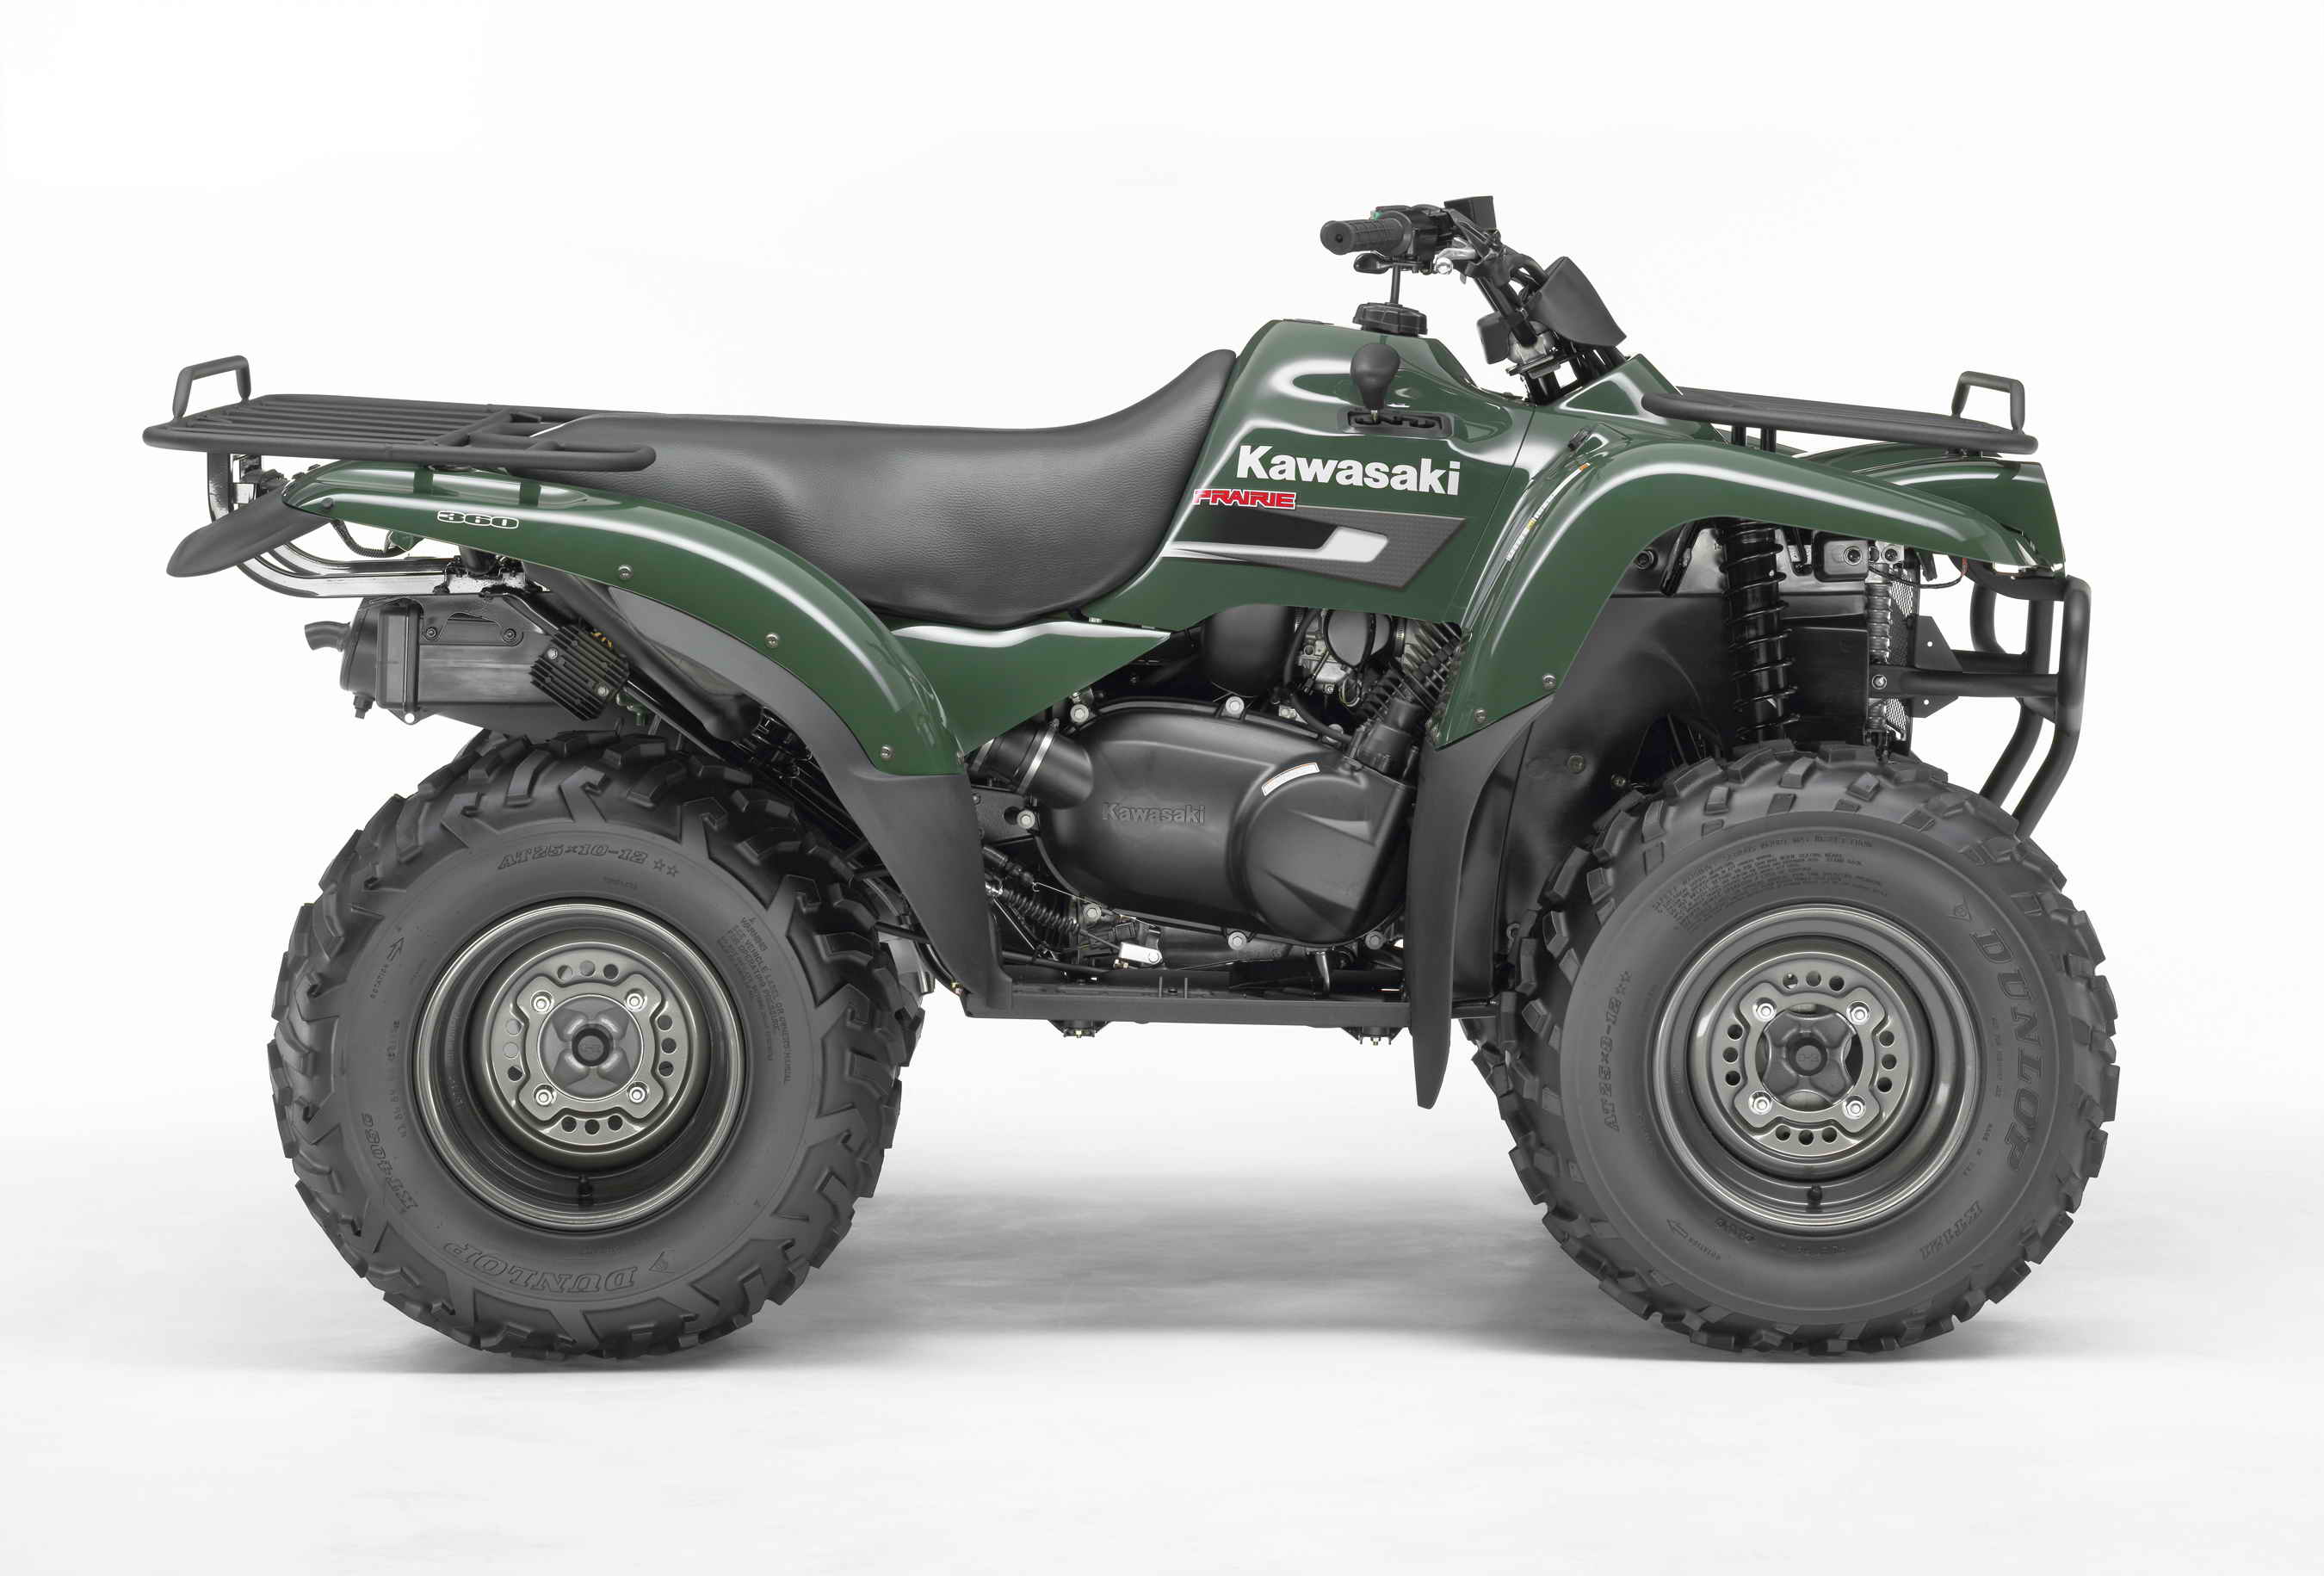 2007 Kawasaki Prairie 360 | Top Speed. »